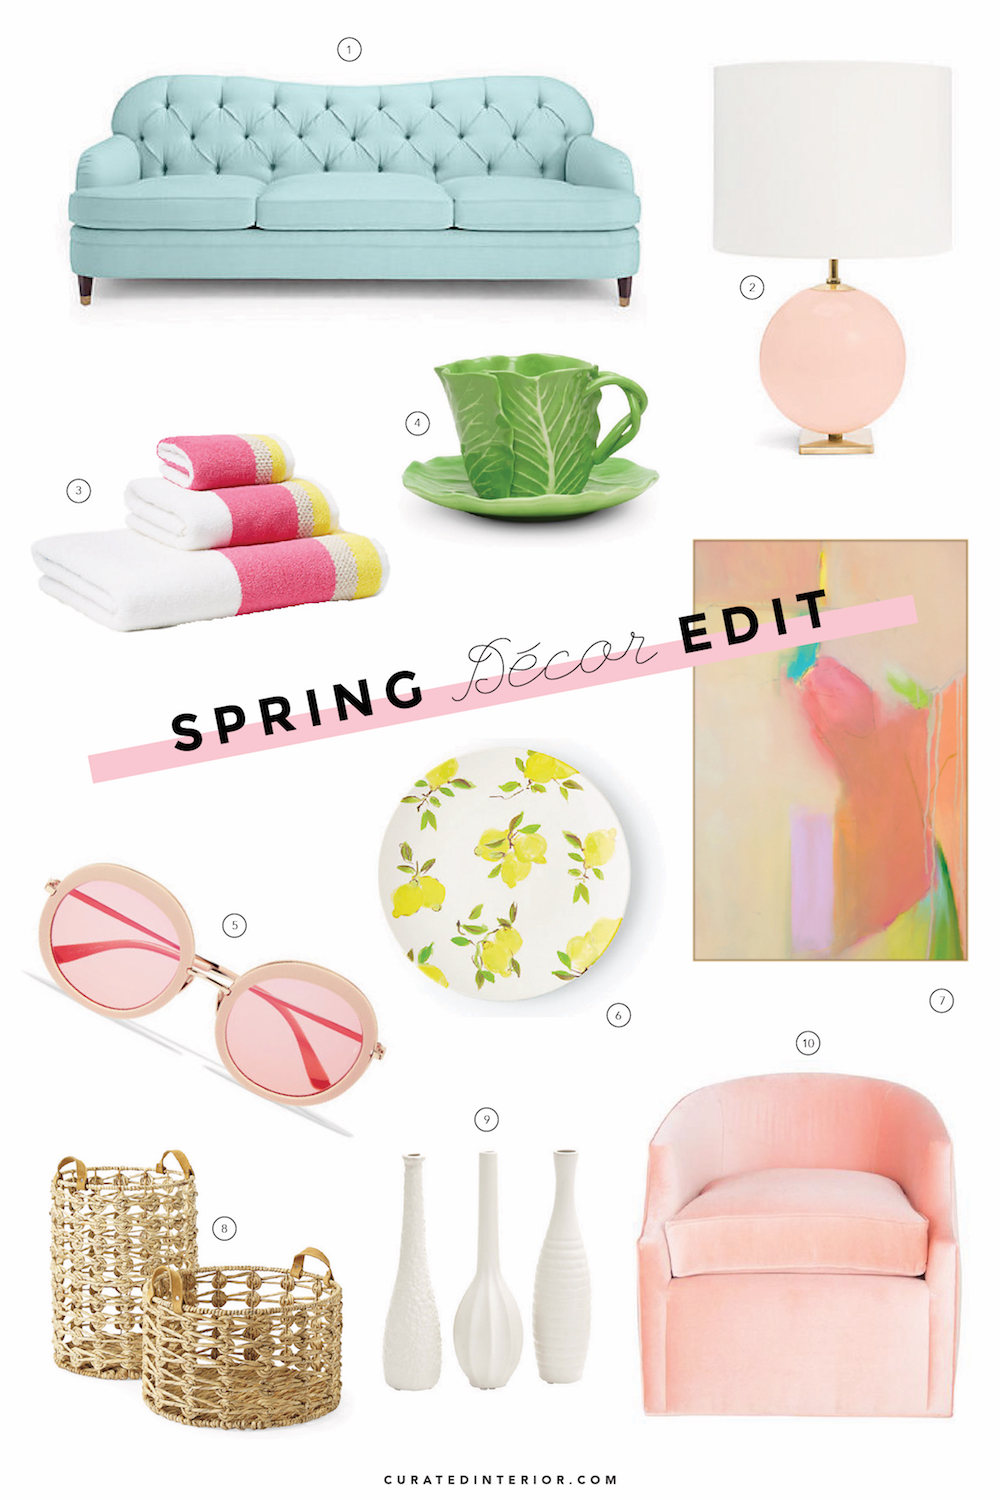 Our favorite decor picks for Spring 2017!